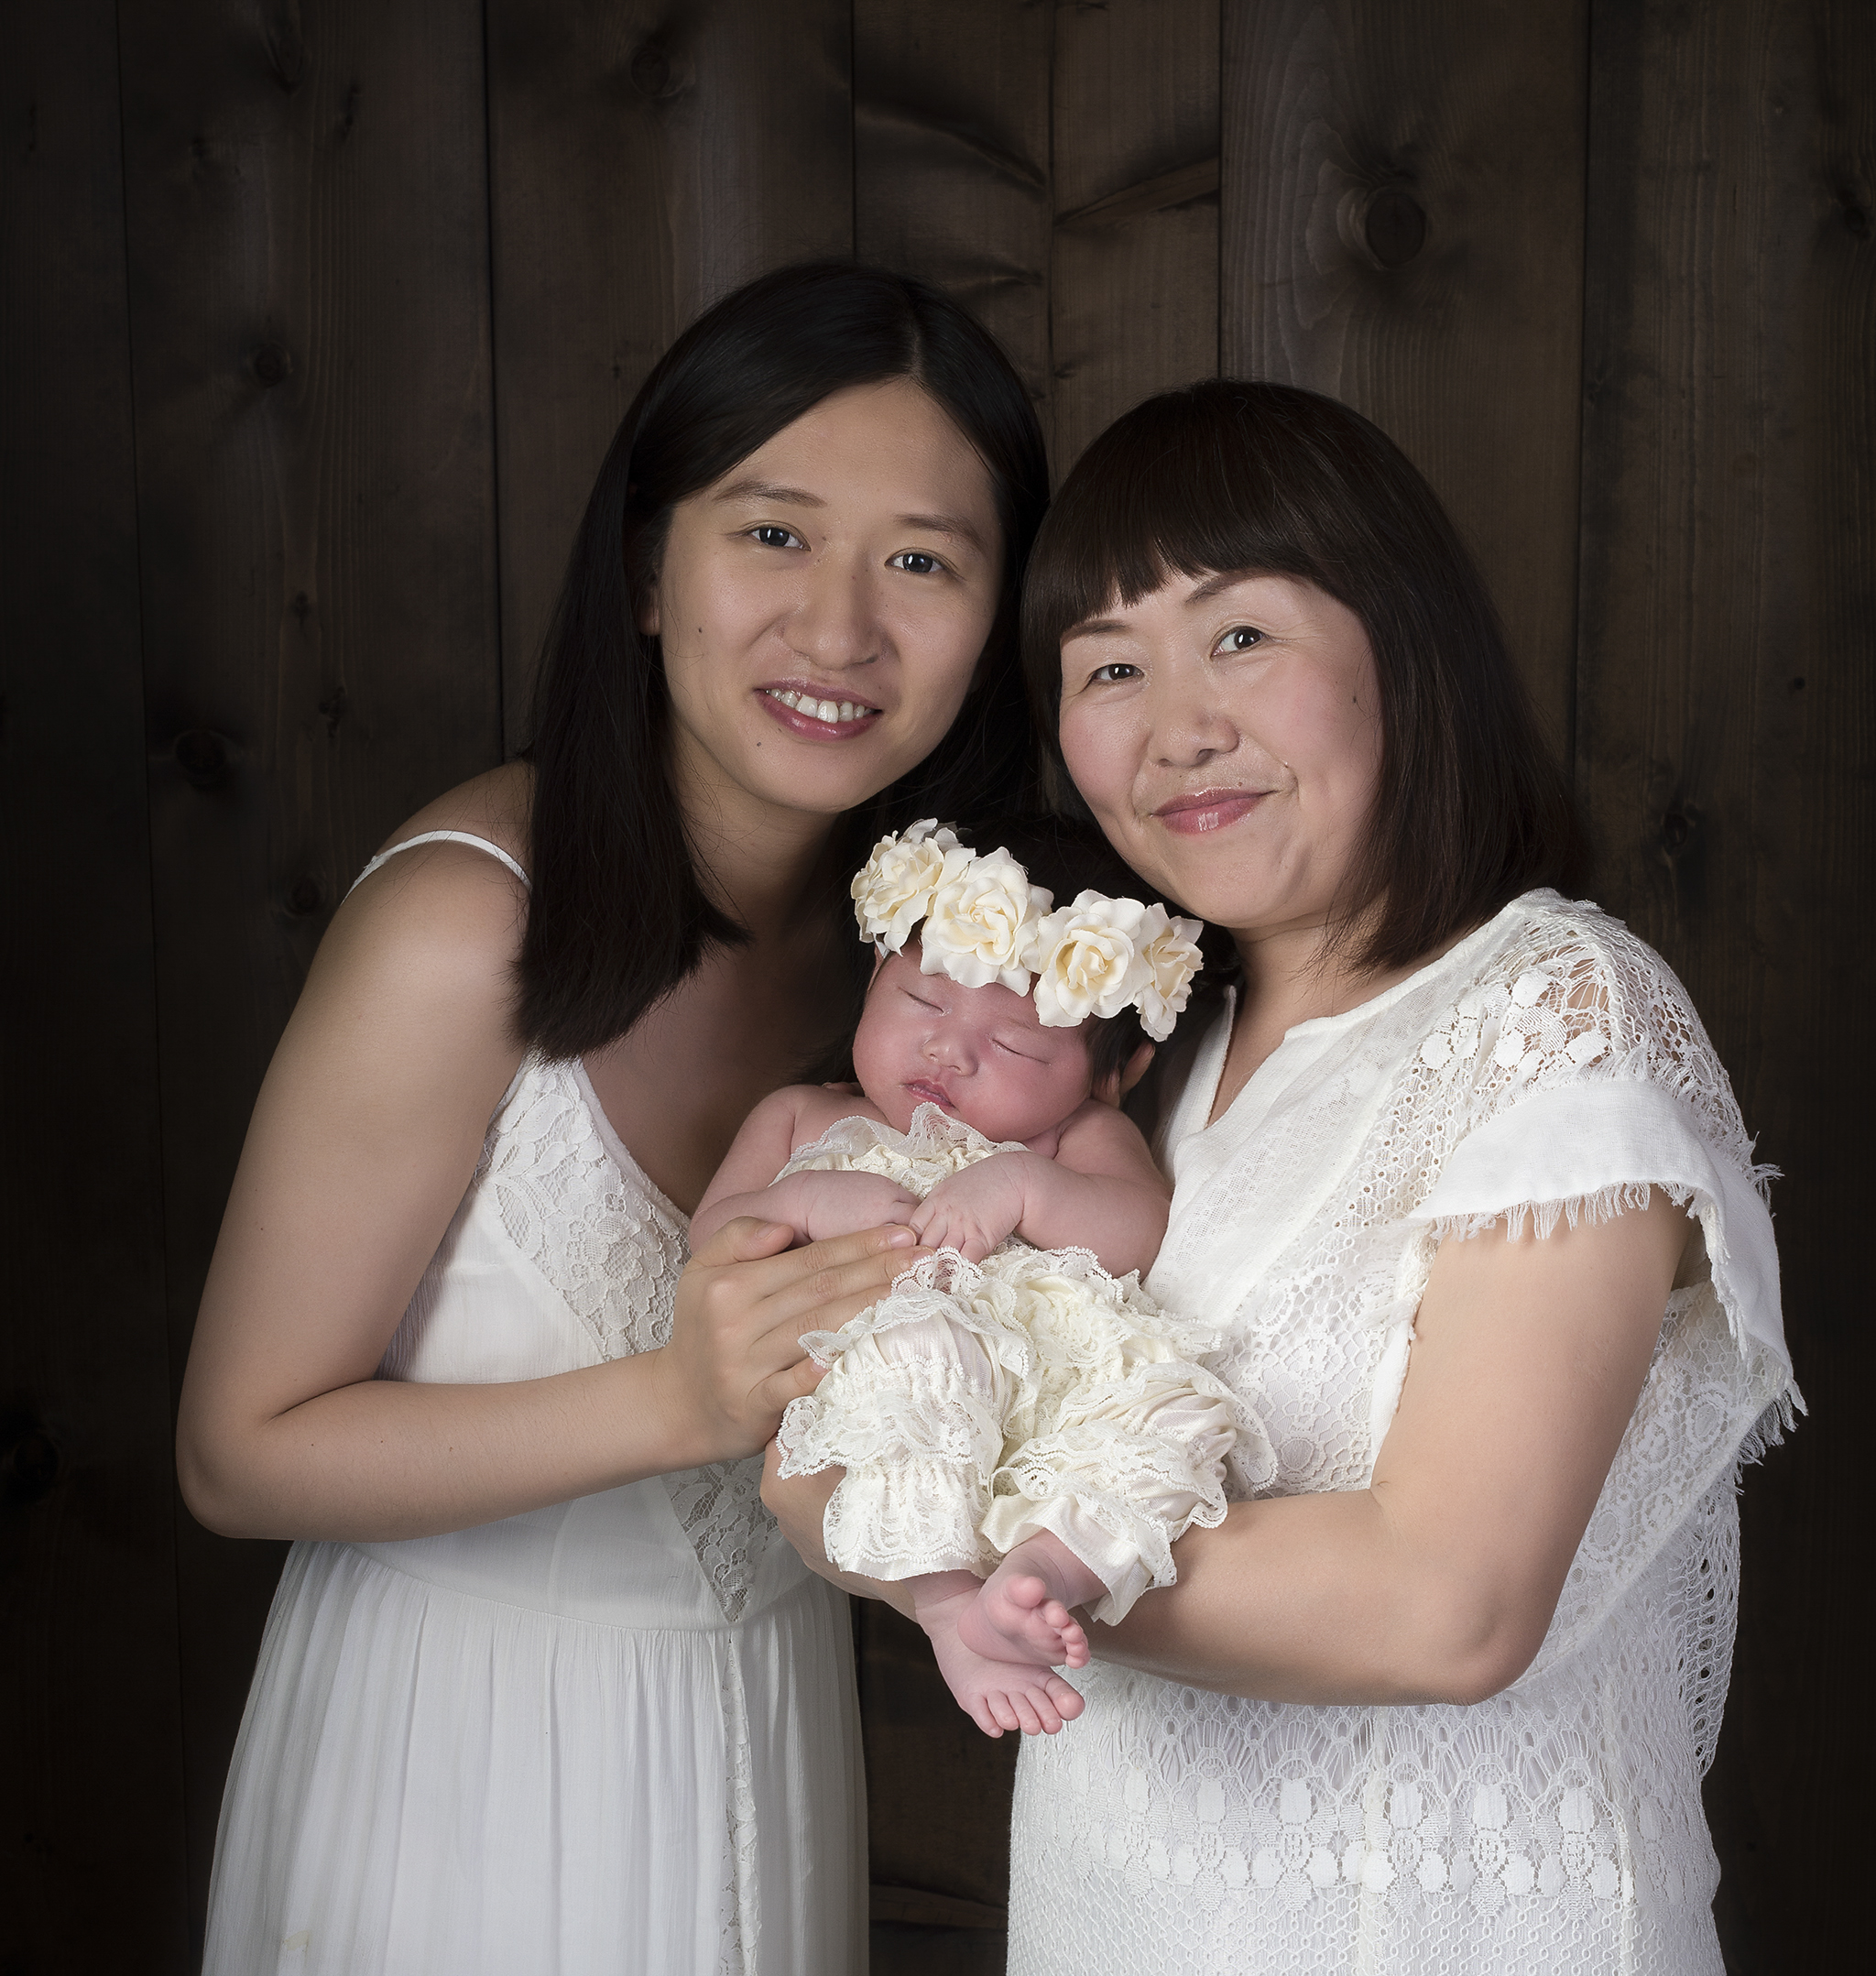 Saskatoon-Newborn-Family-Renditure-Baby-Photography-Photographer-Maternity-Pregnancy-Saskatchewan-204mFBR.jpg